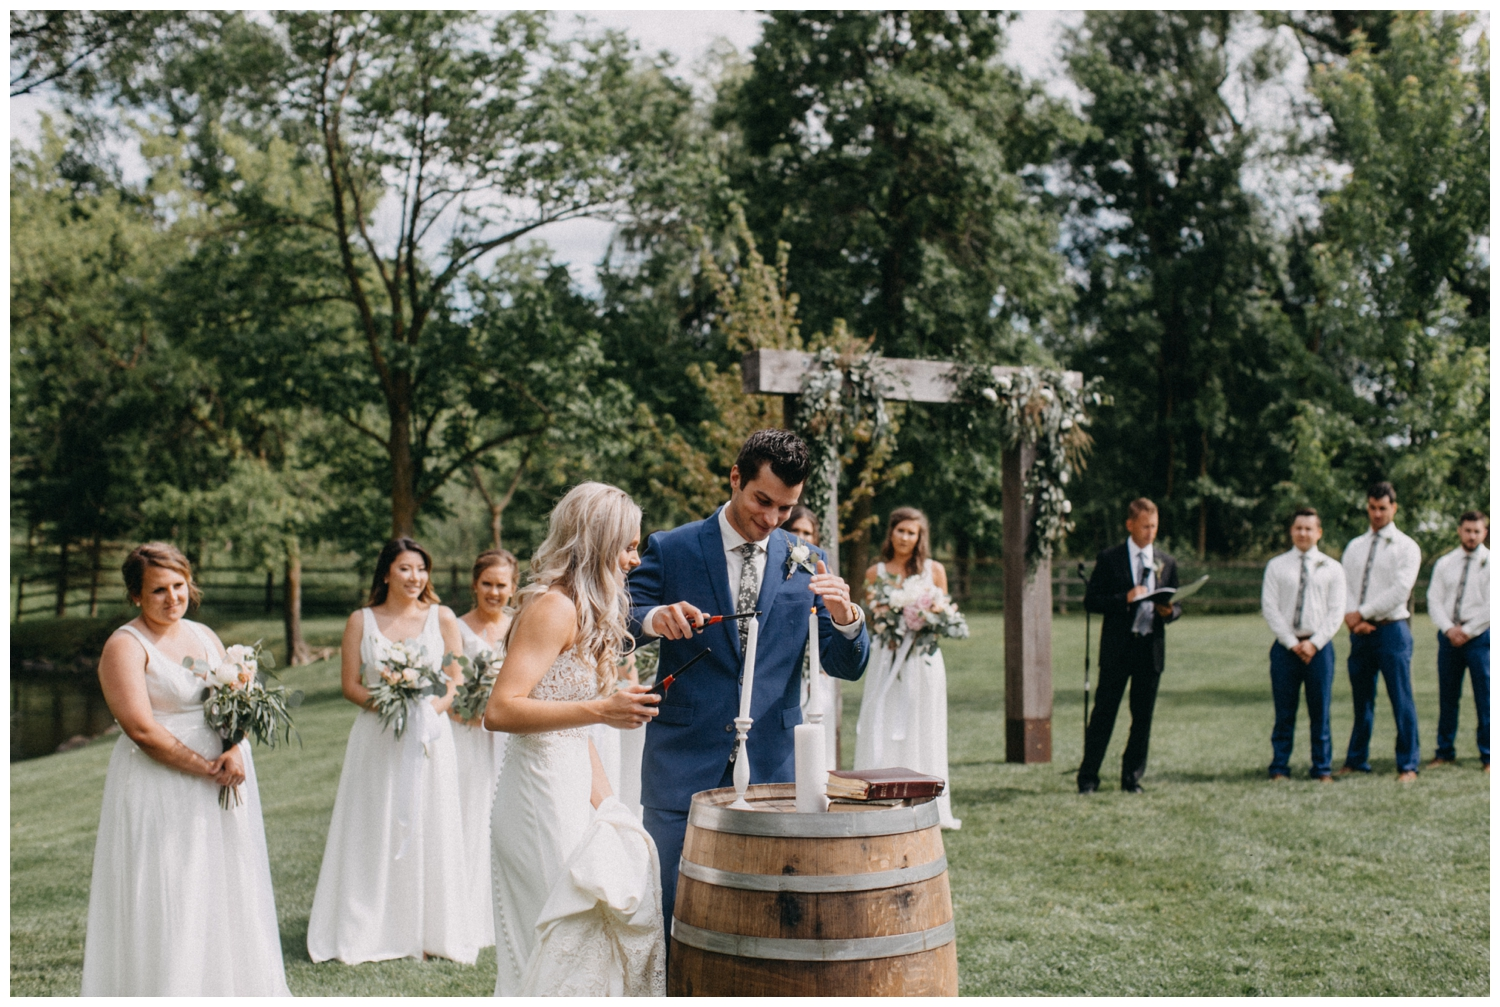 Outdoor summer wedding ceremony at Creekside Farm in Rush City, Minnesota